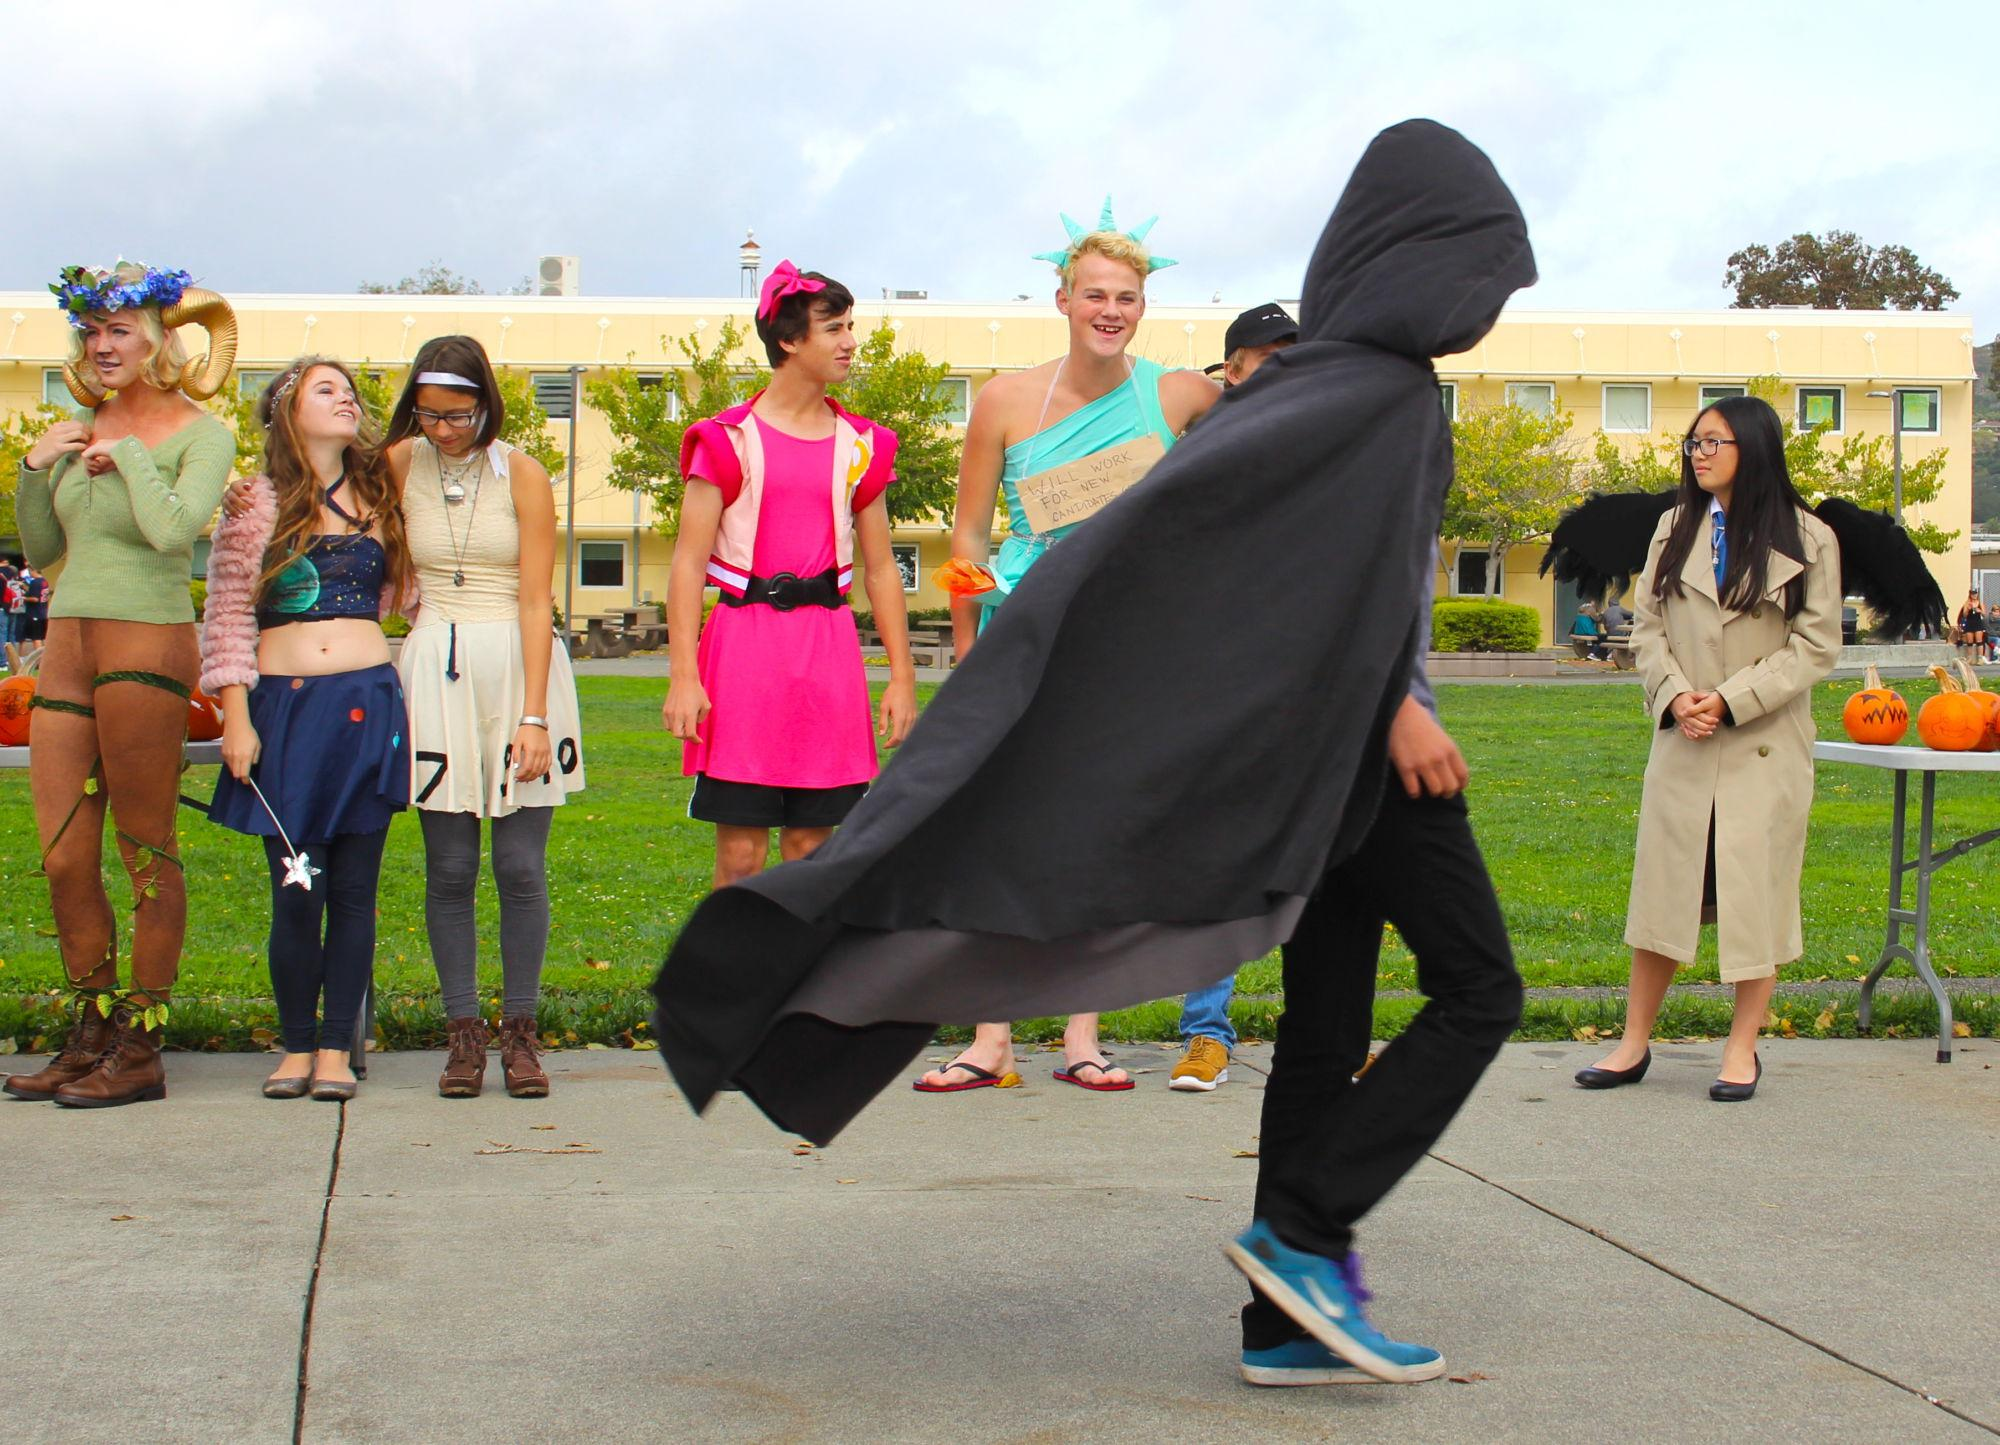 A+students+struts+his+stuff+to+impress+the+judges%2C+his+black+cape+flowing+in+the+wind.